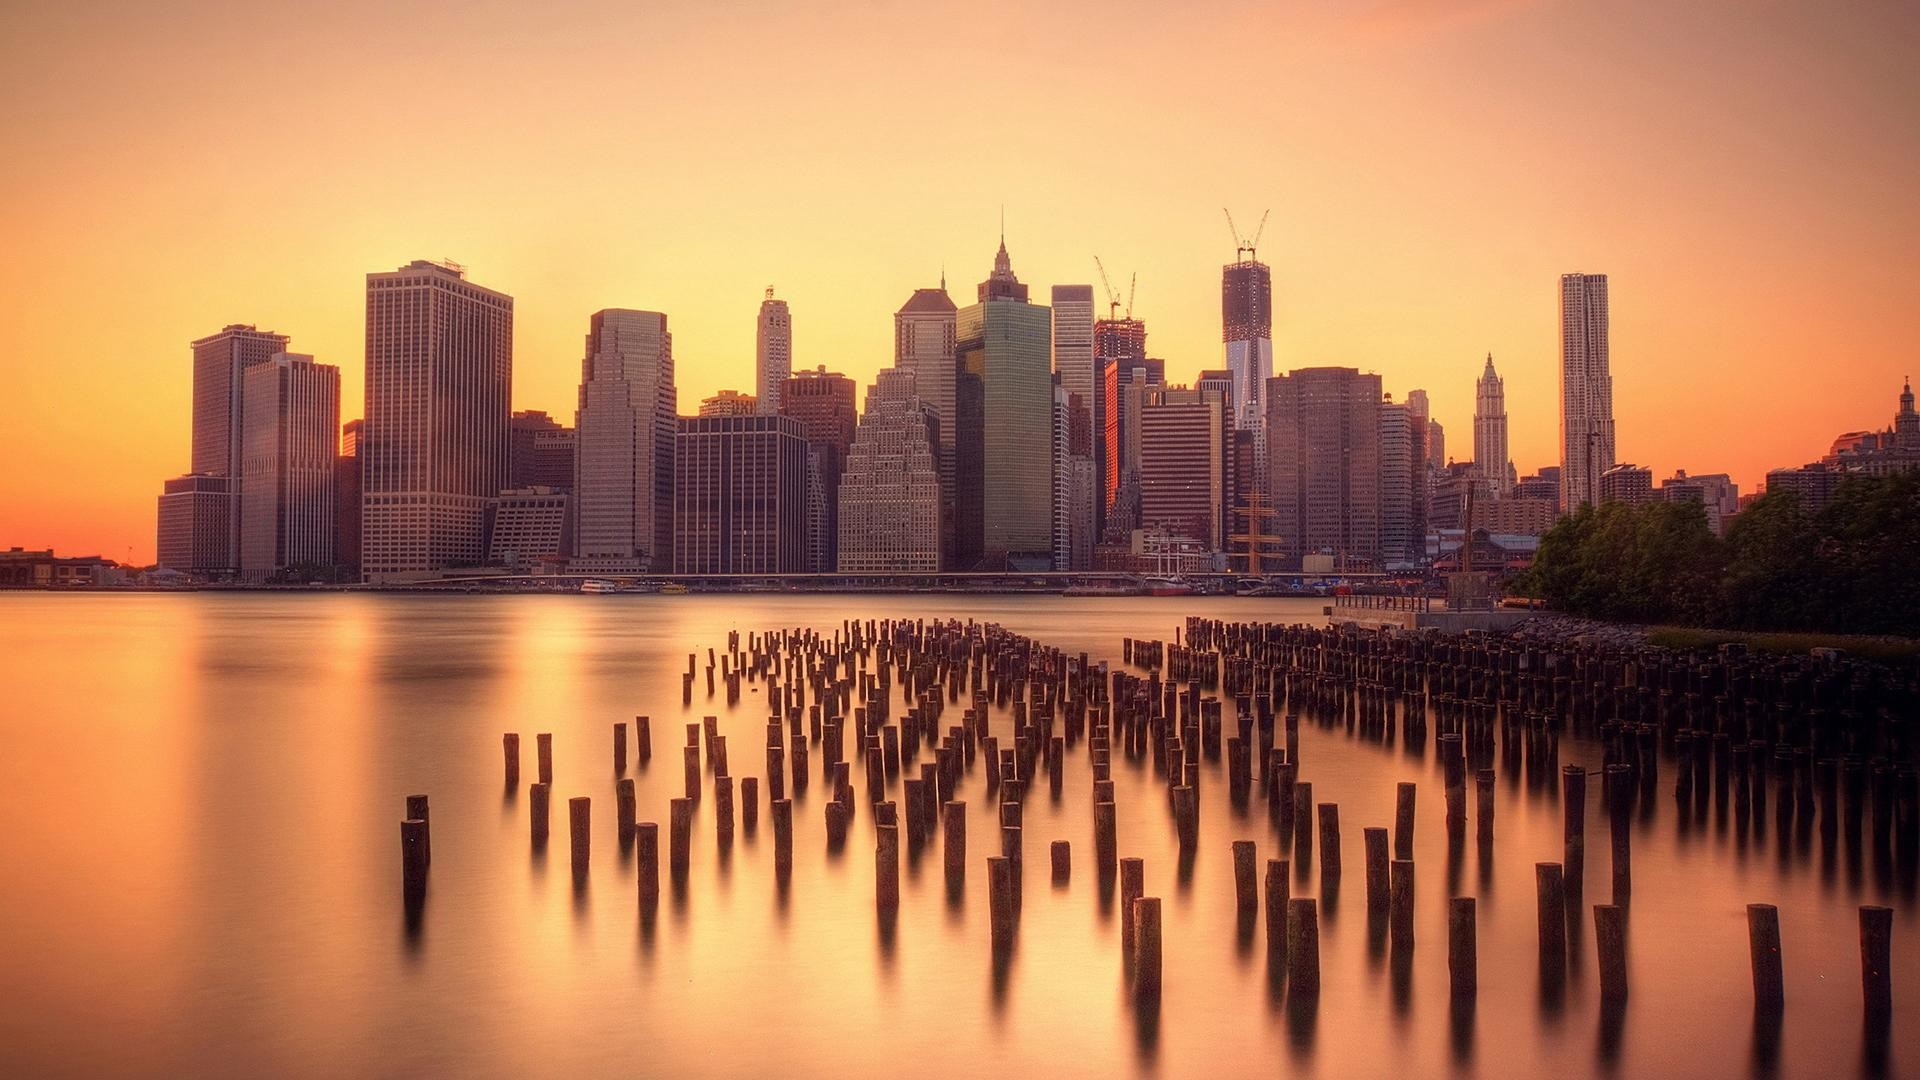 "1920x1080 1600x1067 New York City Wallpapers | HD Wallpapers | ID #5791"">"